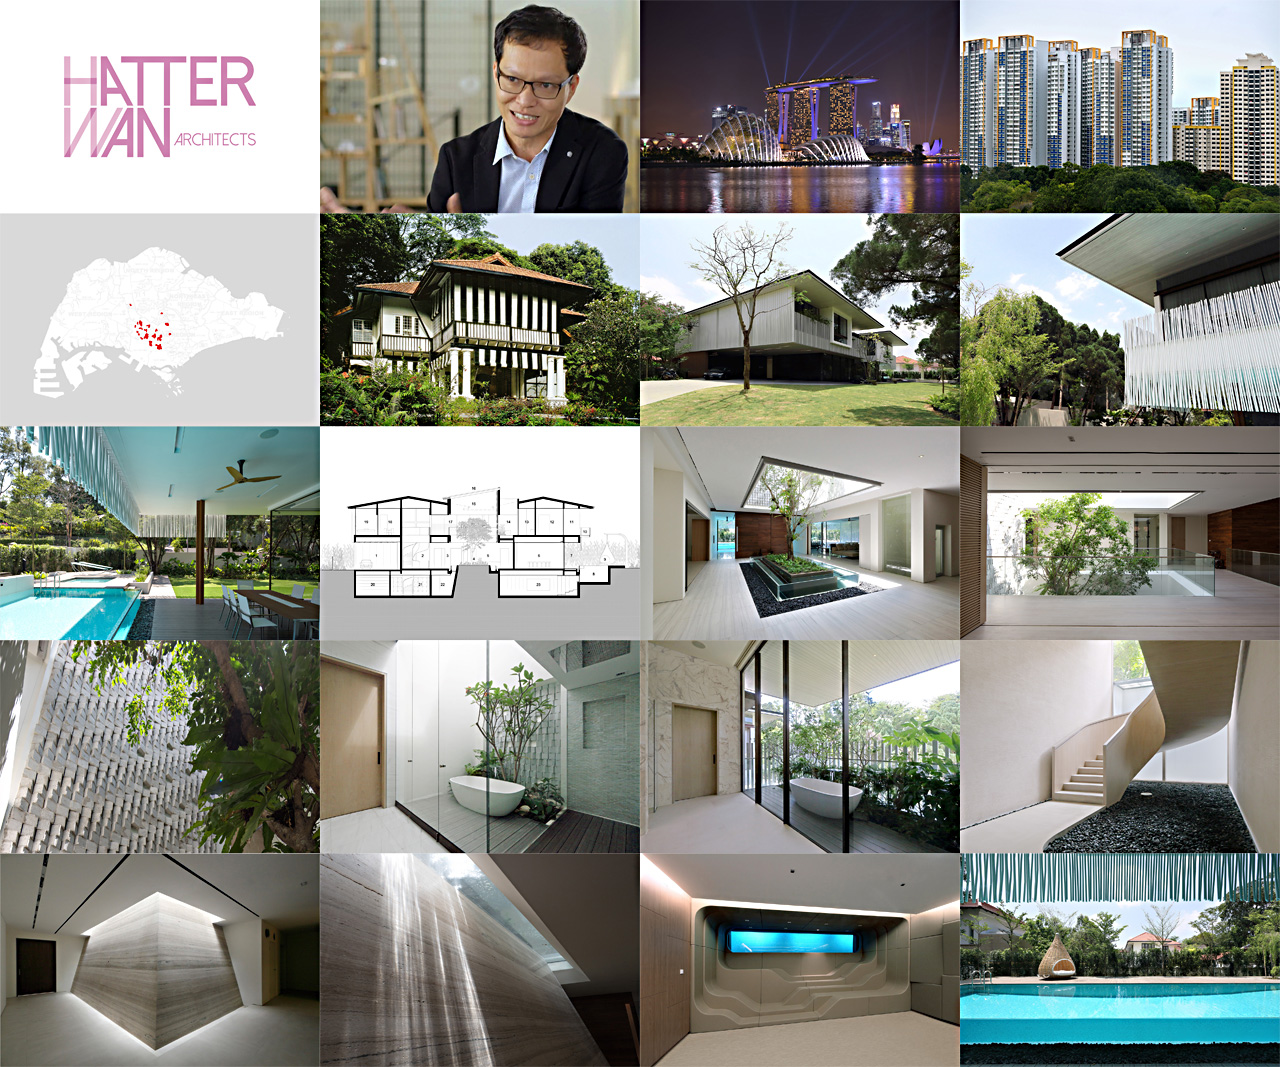 hatterwan-architects_news_pecha-kucha-thumbnails